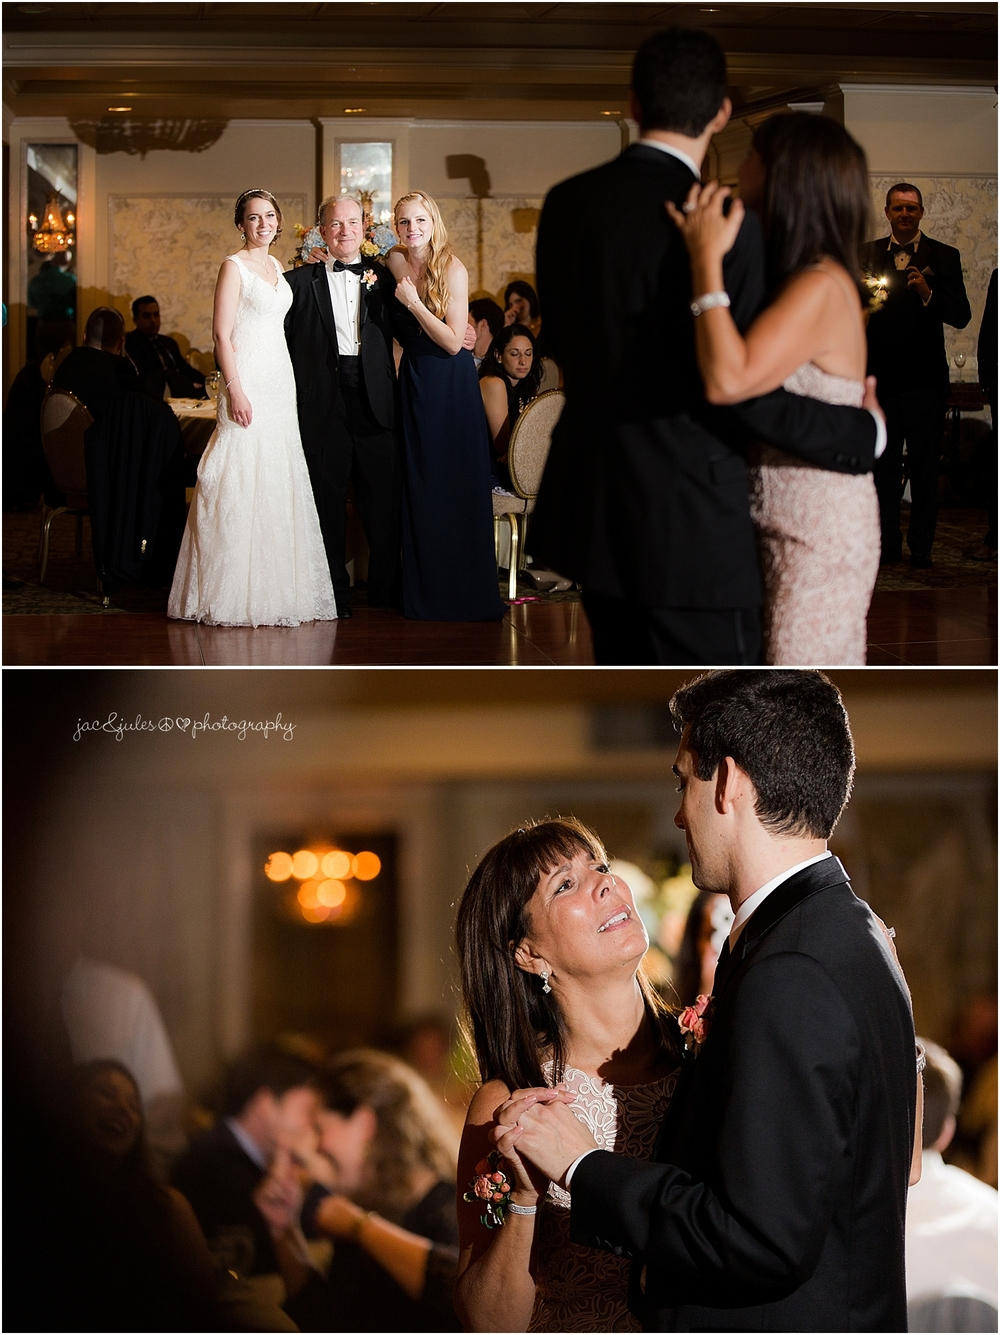 jacnjules photograph parent dances at their wedding reception at olde mill inn in basking ridge nj